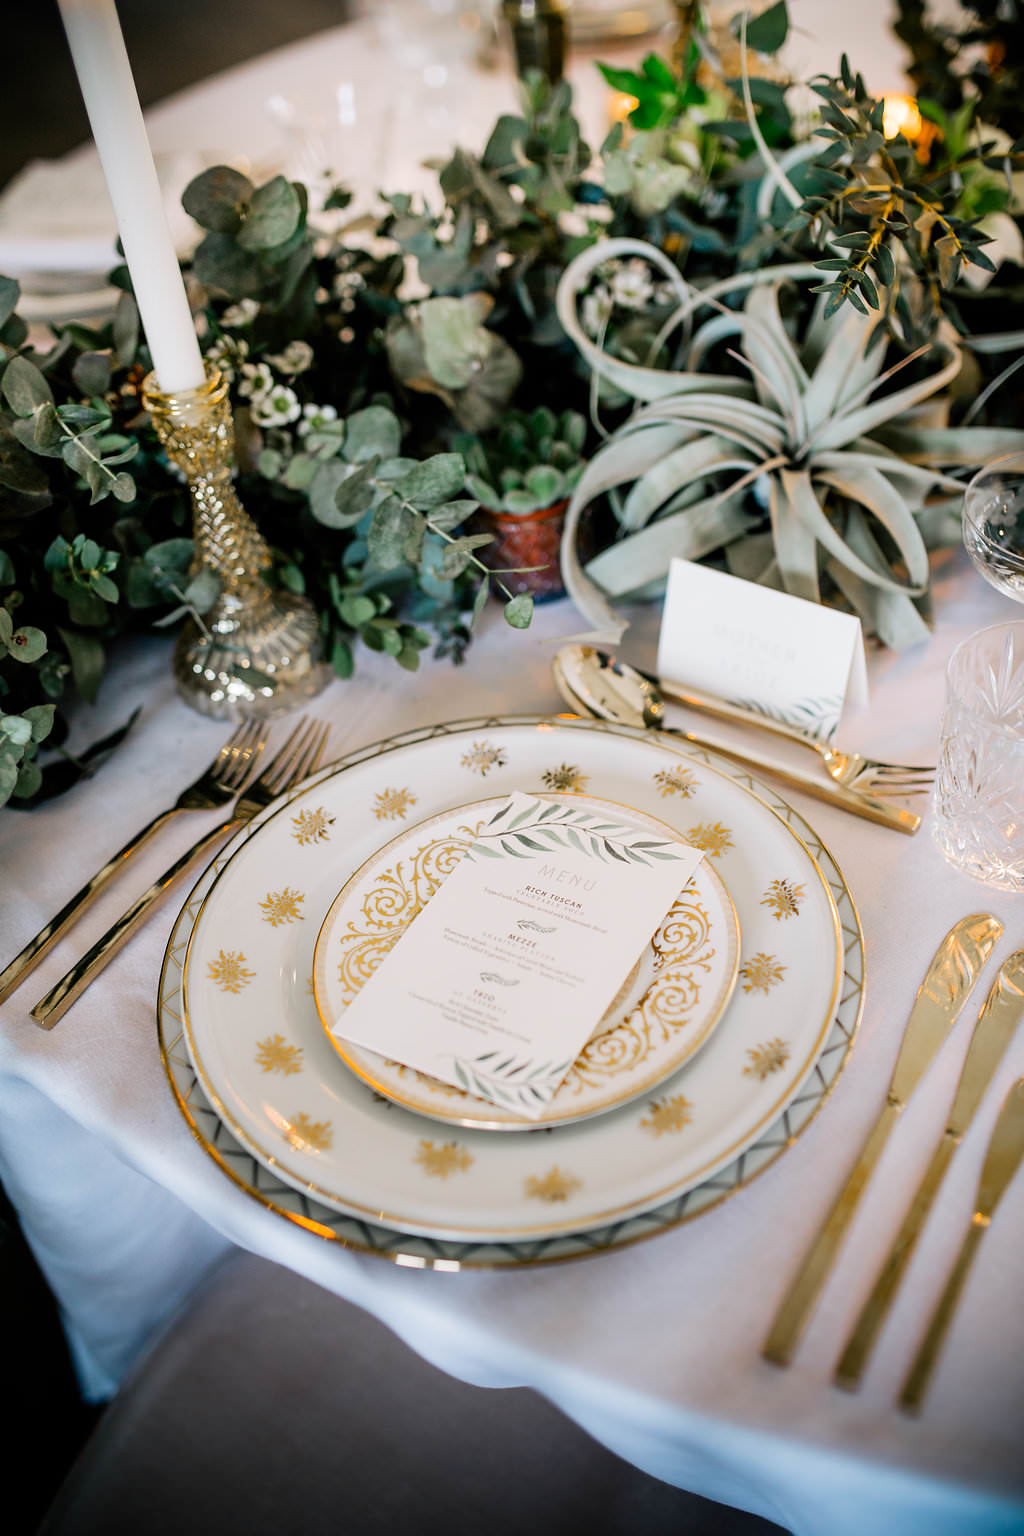 Place Setting Gold Cutlery Plates Lapstone Barn Wedding Ideas Cotswolds Katie Hamilton Photography